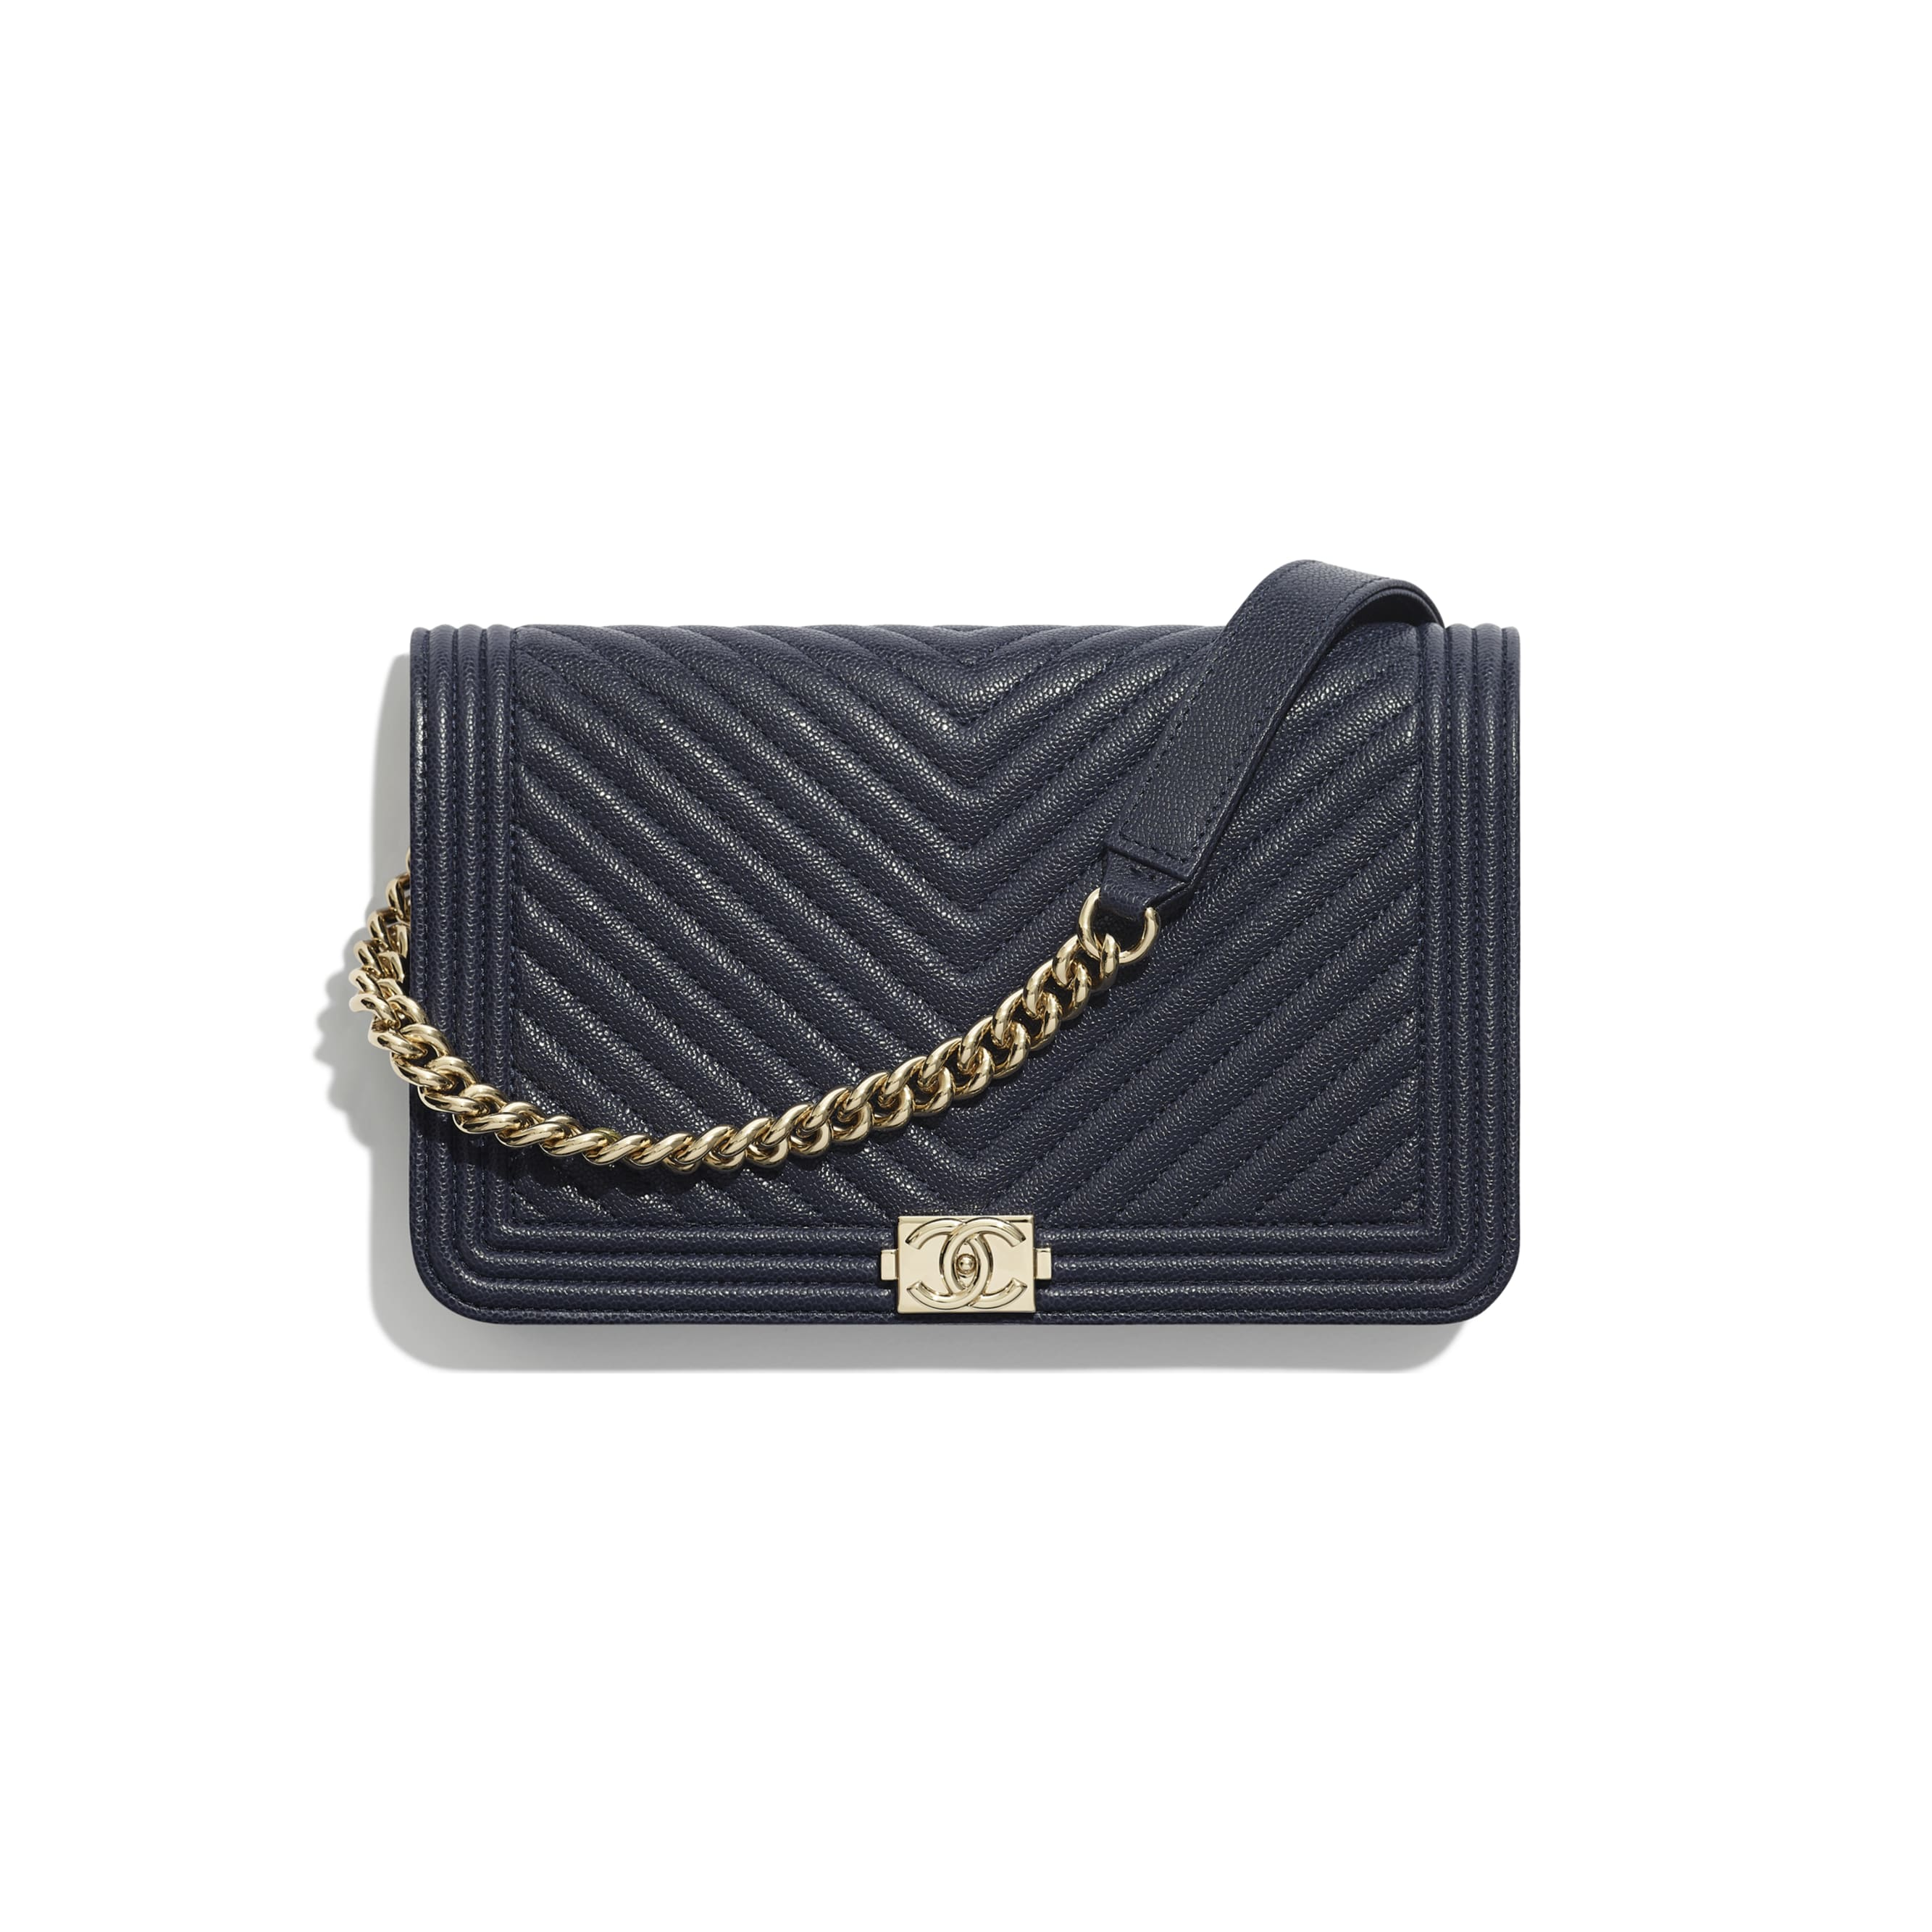 BOY CHANEL Wallet On Chain - Navy Blue - Grained Calfskin & Gold-Tone Metal - Default view - see standard sized version